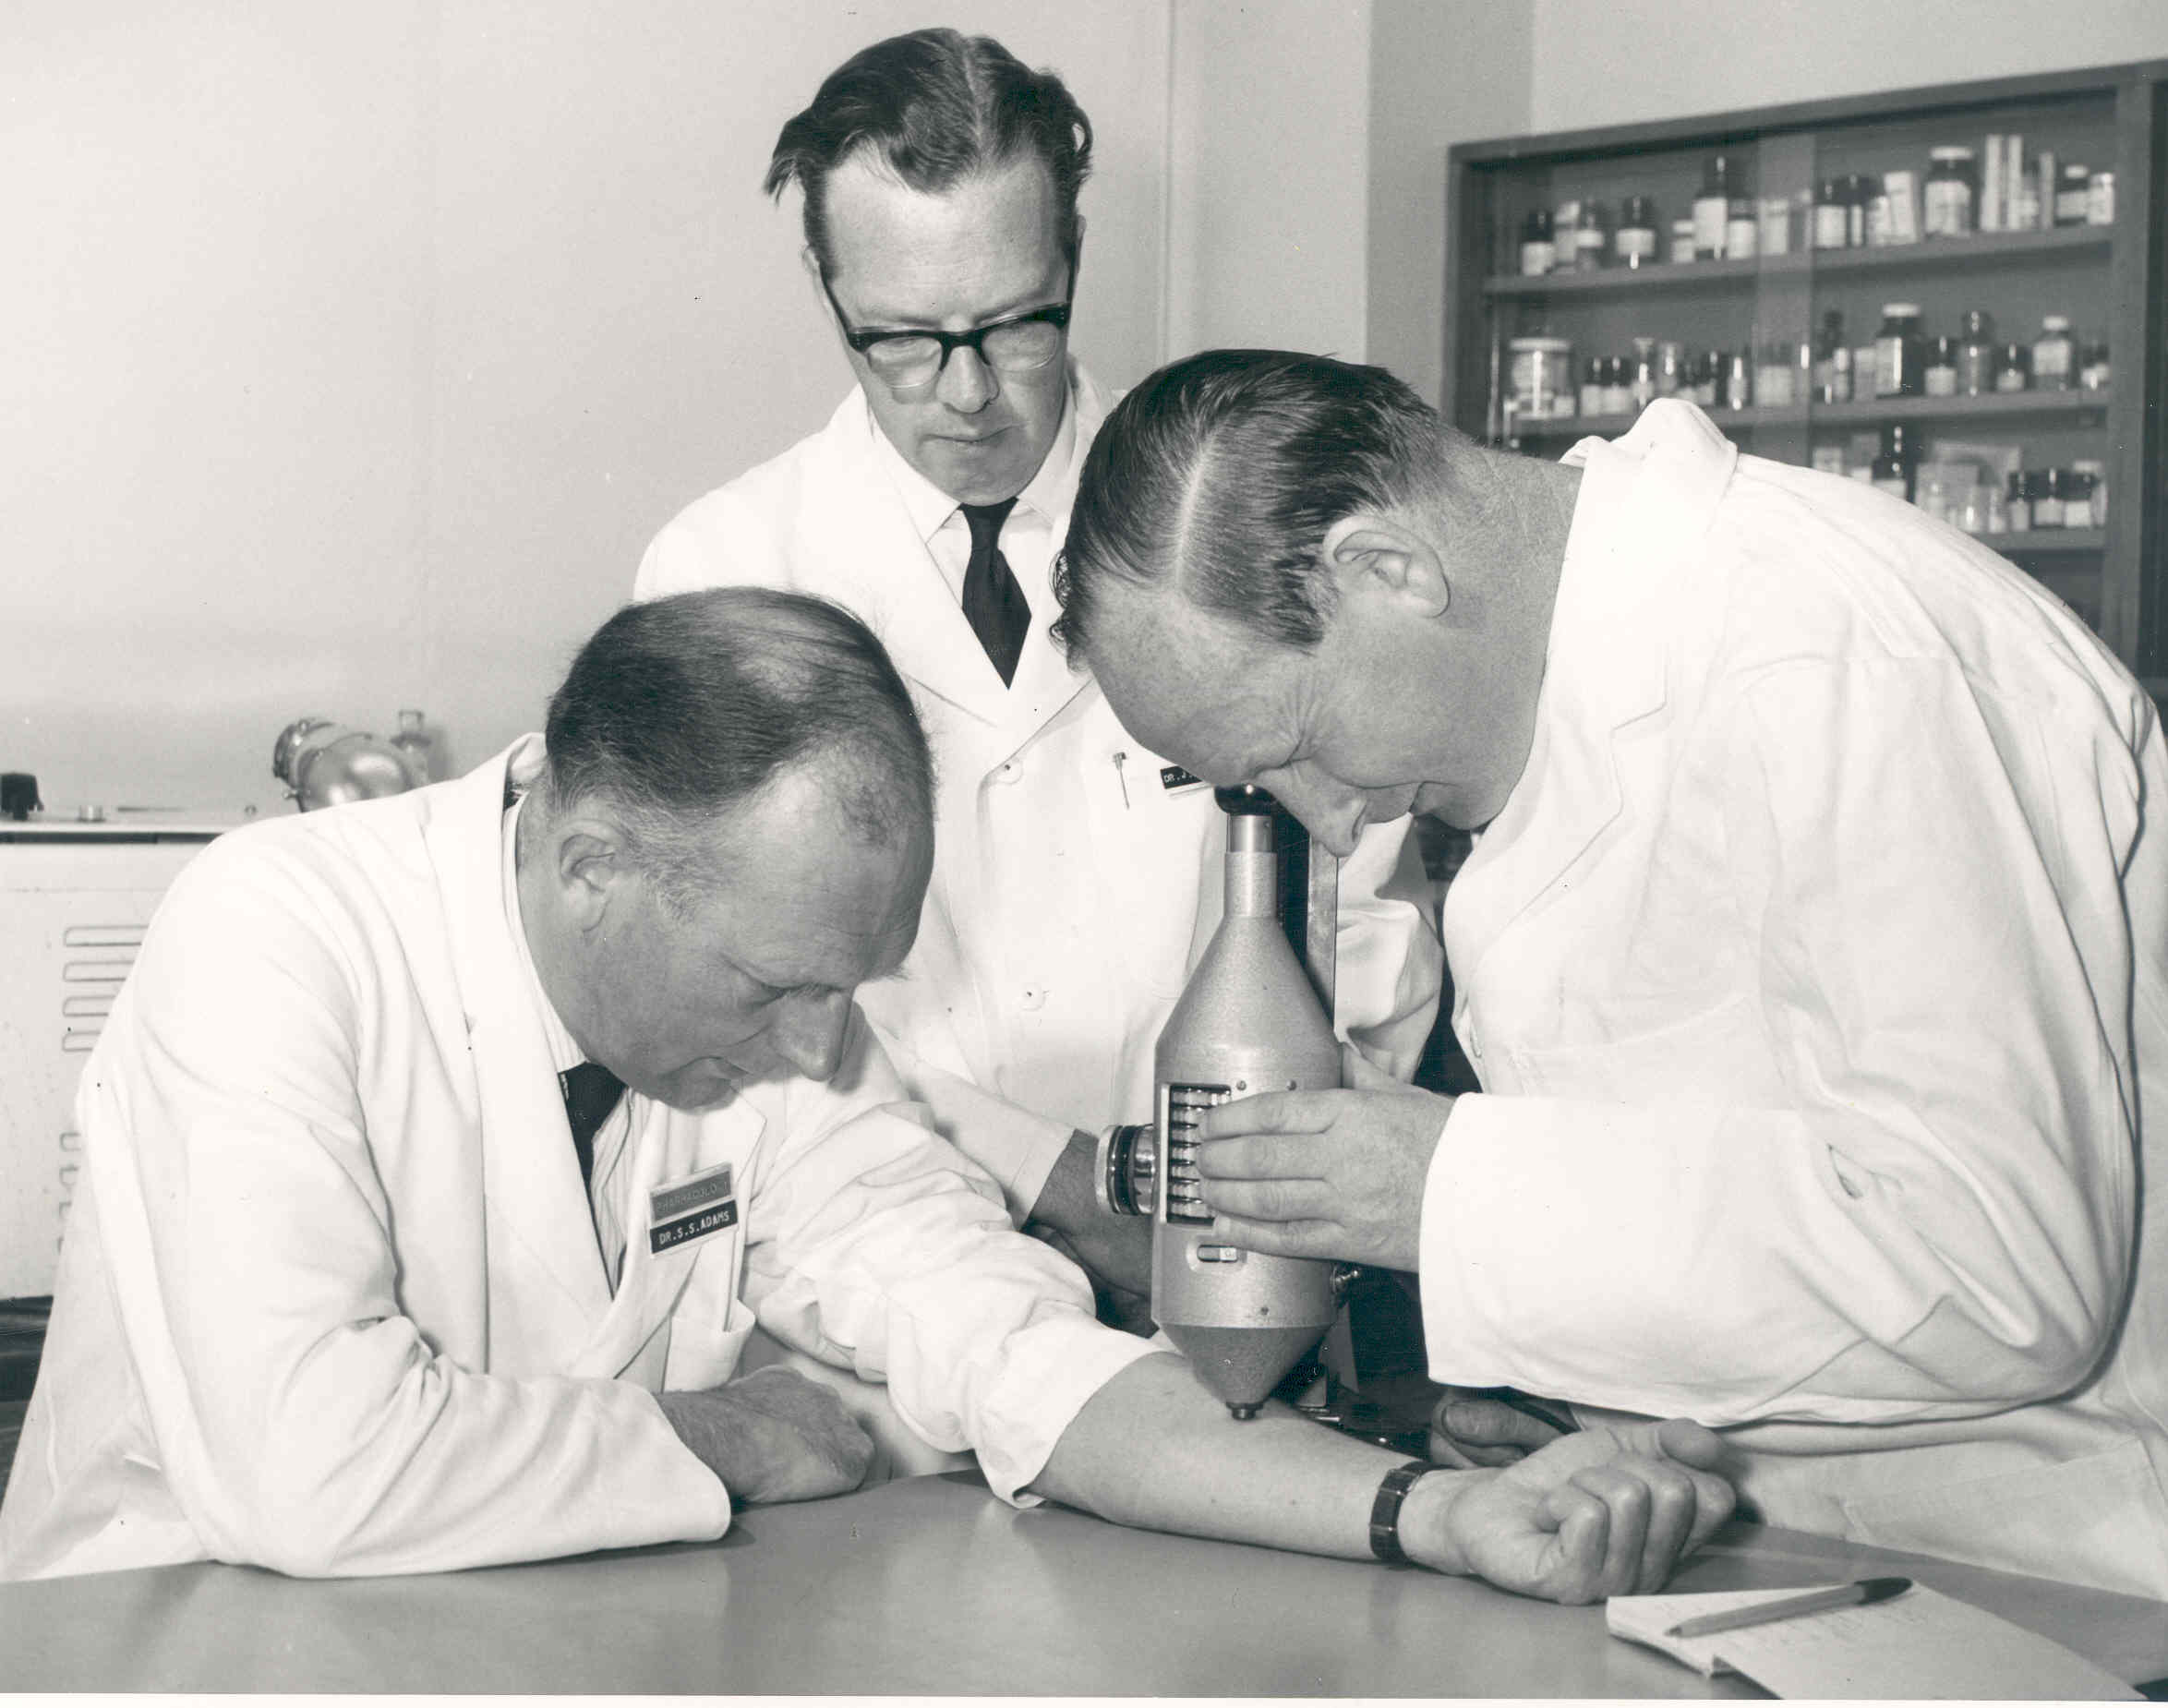 Dr Stewart Adams, Dr John Nicholson and Mr R Cobb studying degrees of inflammation using a colour intensity measuring device.